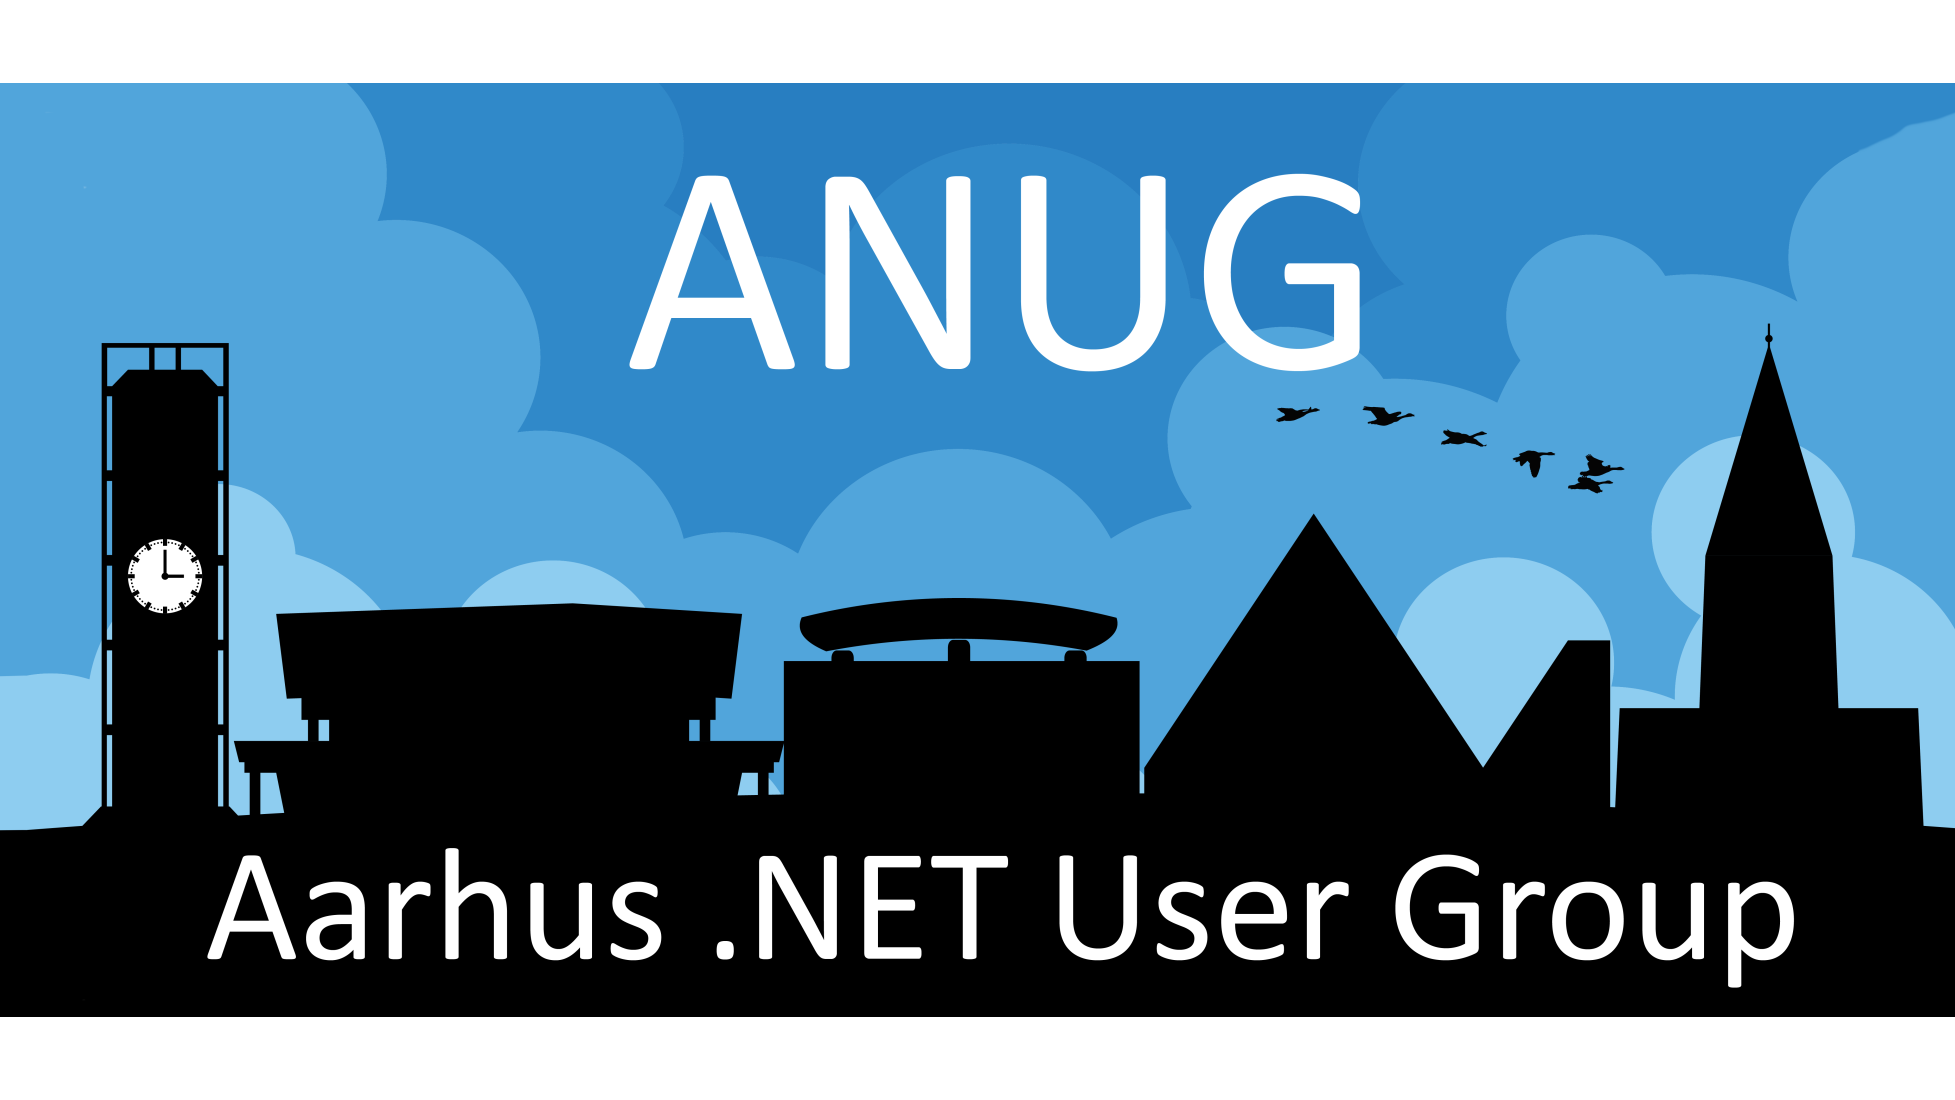 Aarhus .NET User Group